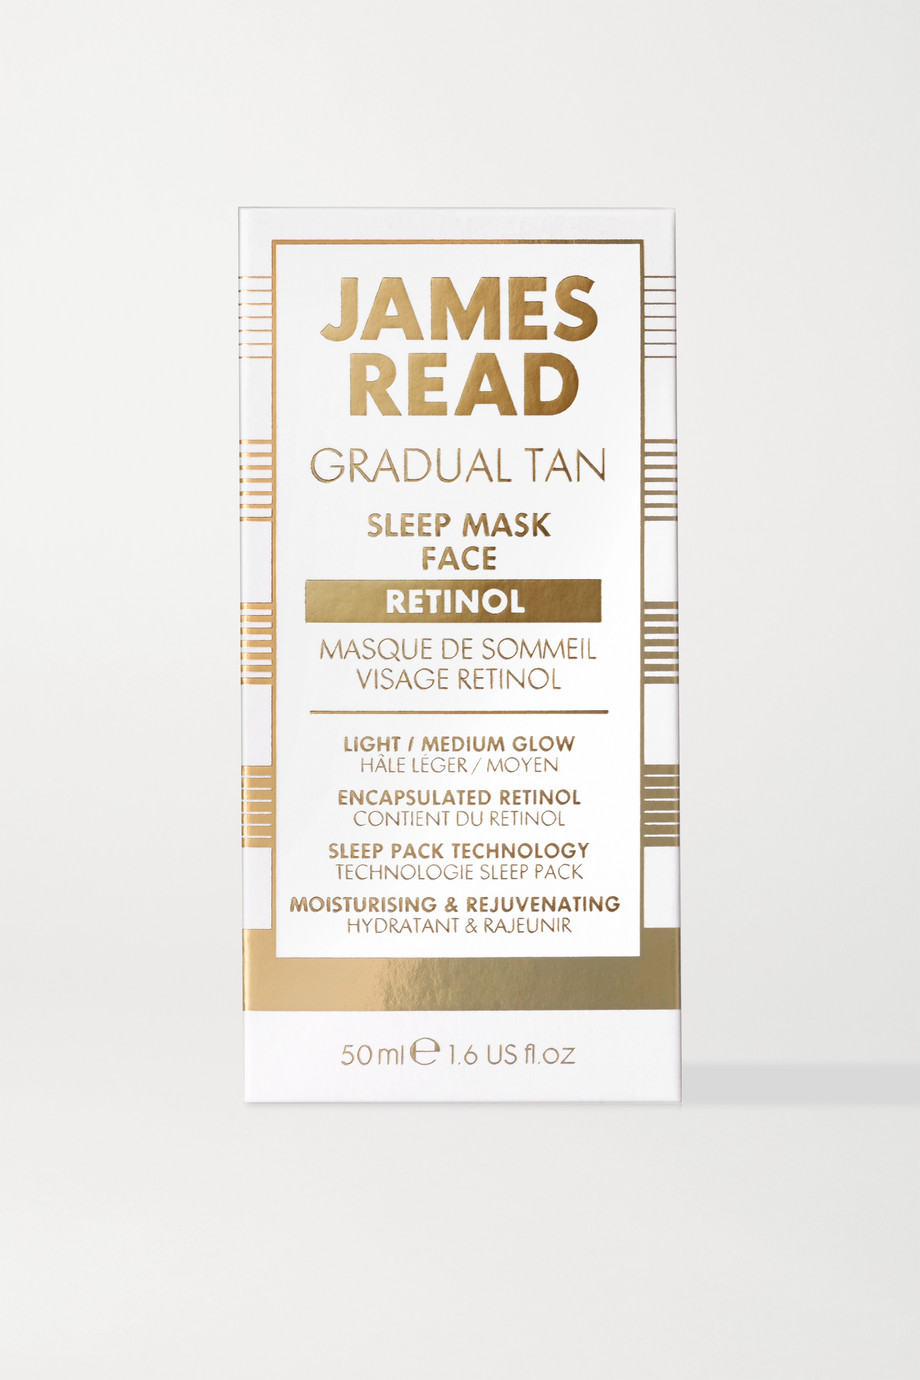 James Read Sleep Mask Face Retinol, 50ml